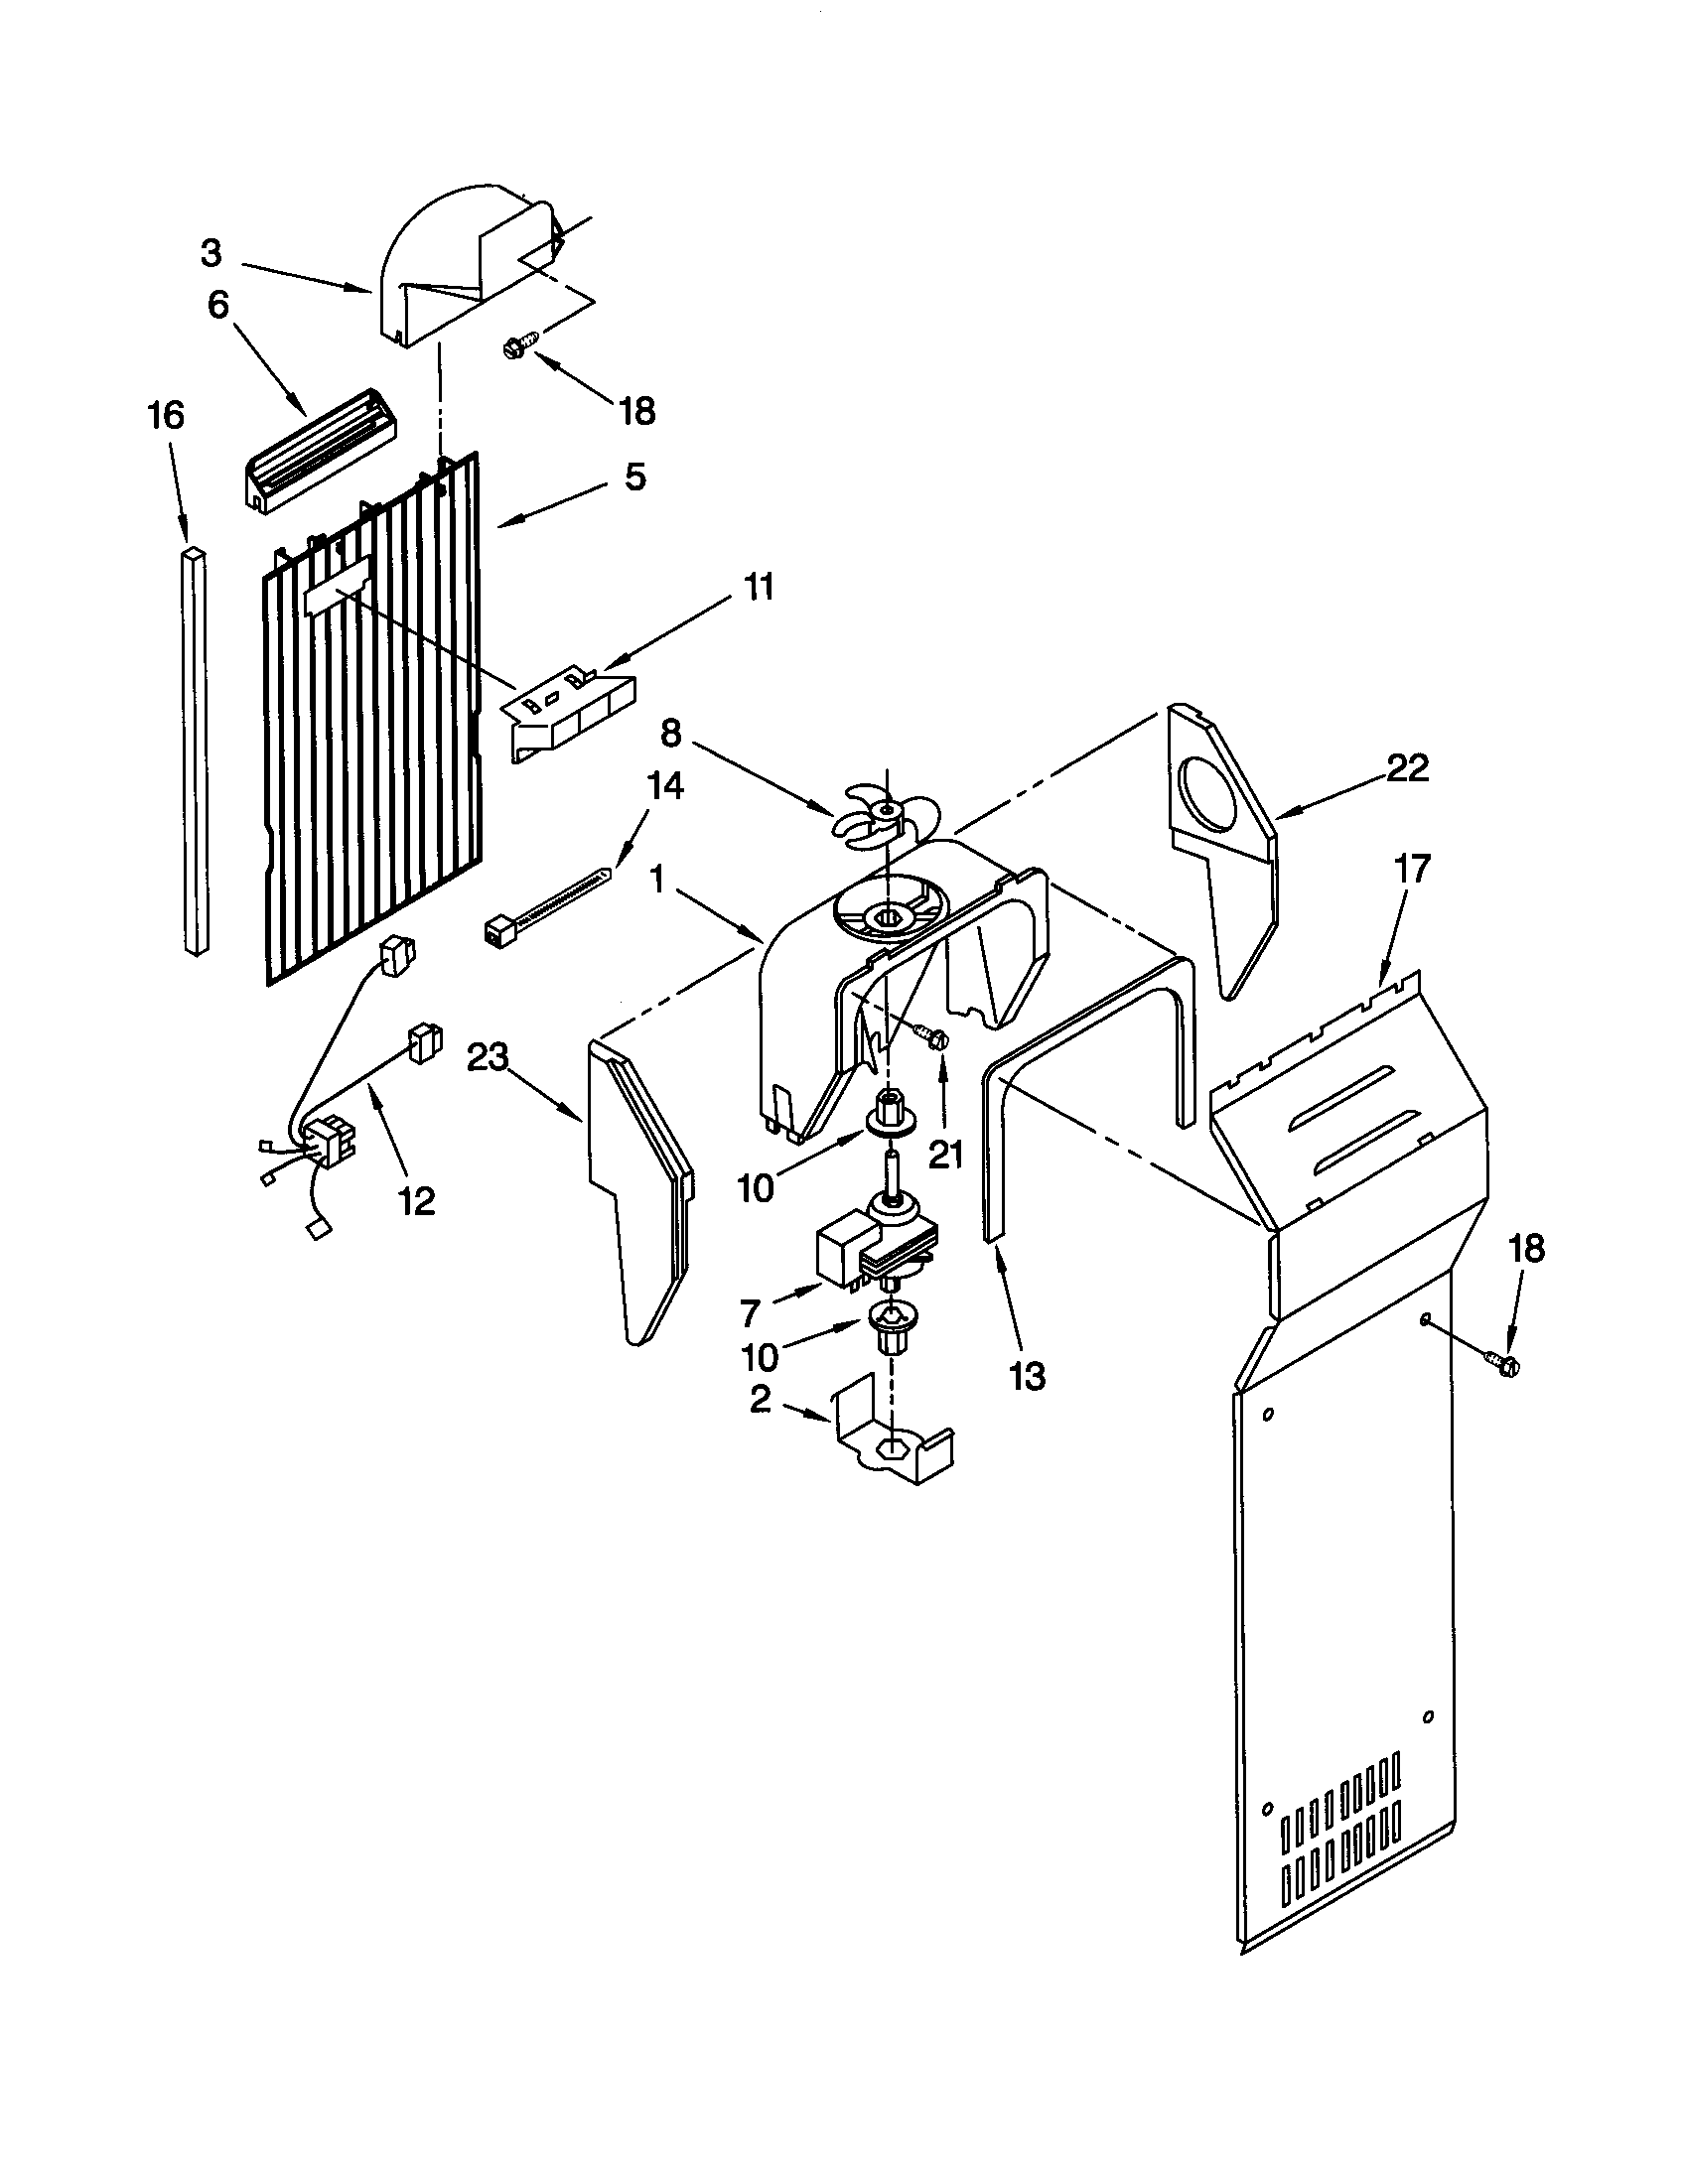 Images of ice maker for kenmore side by side refrigerator